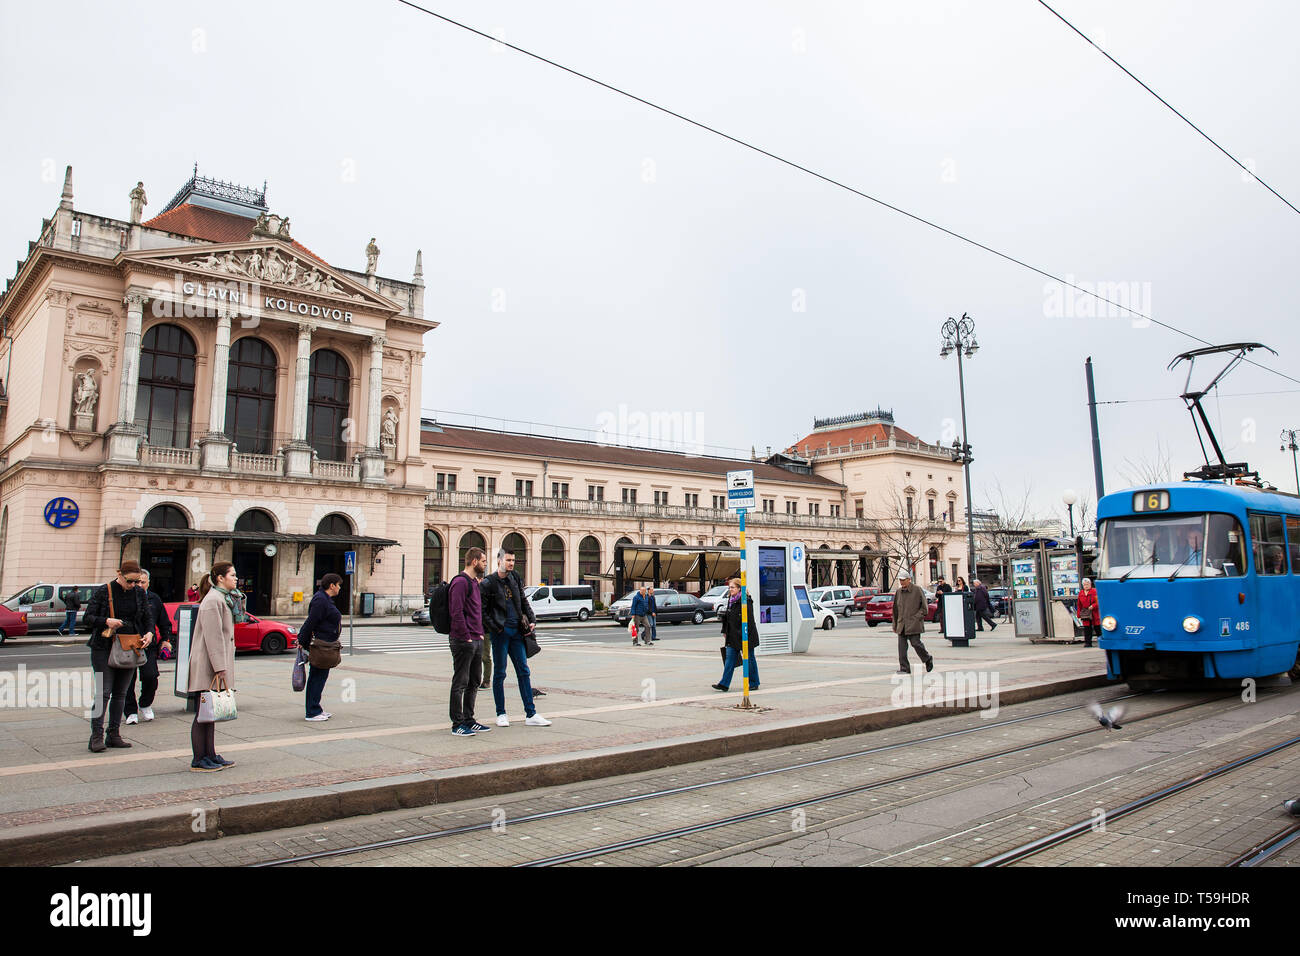 Zagreb Croatia April 2018 People In Front Of Glavni Kolodvor